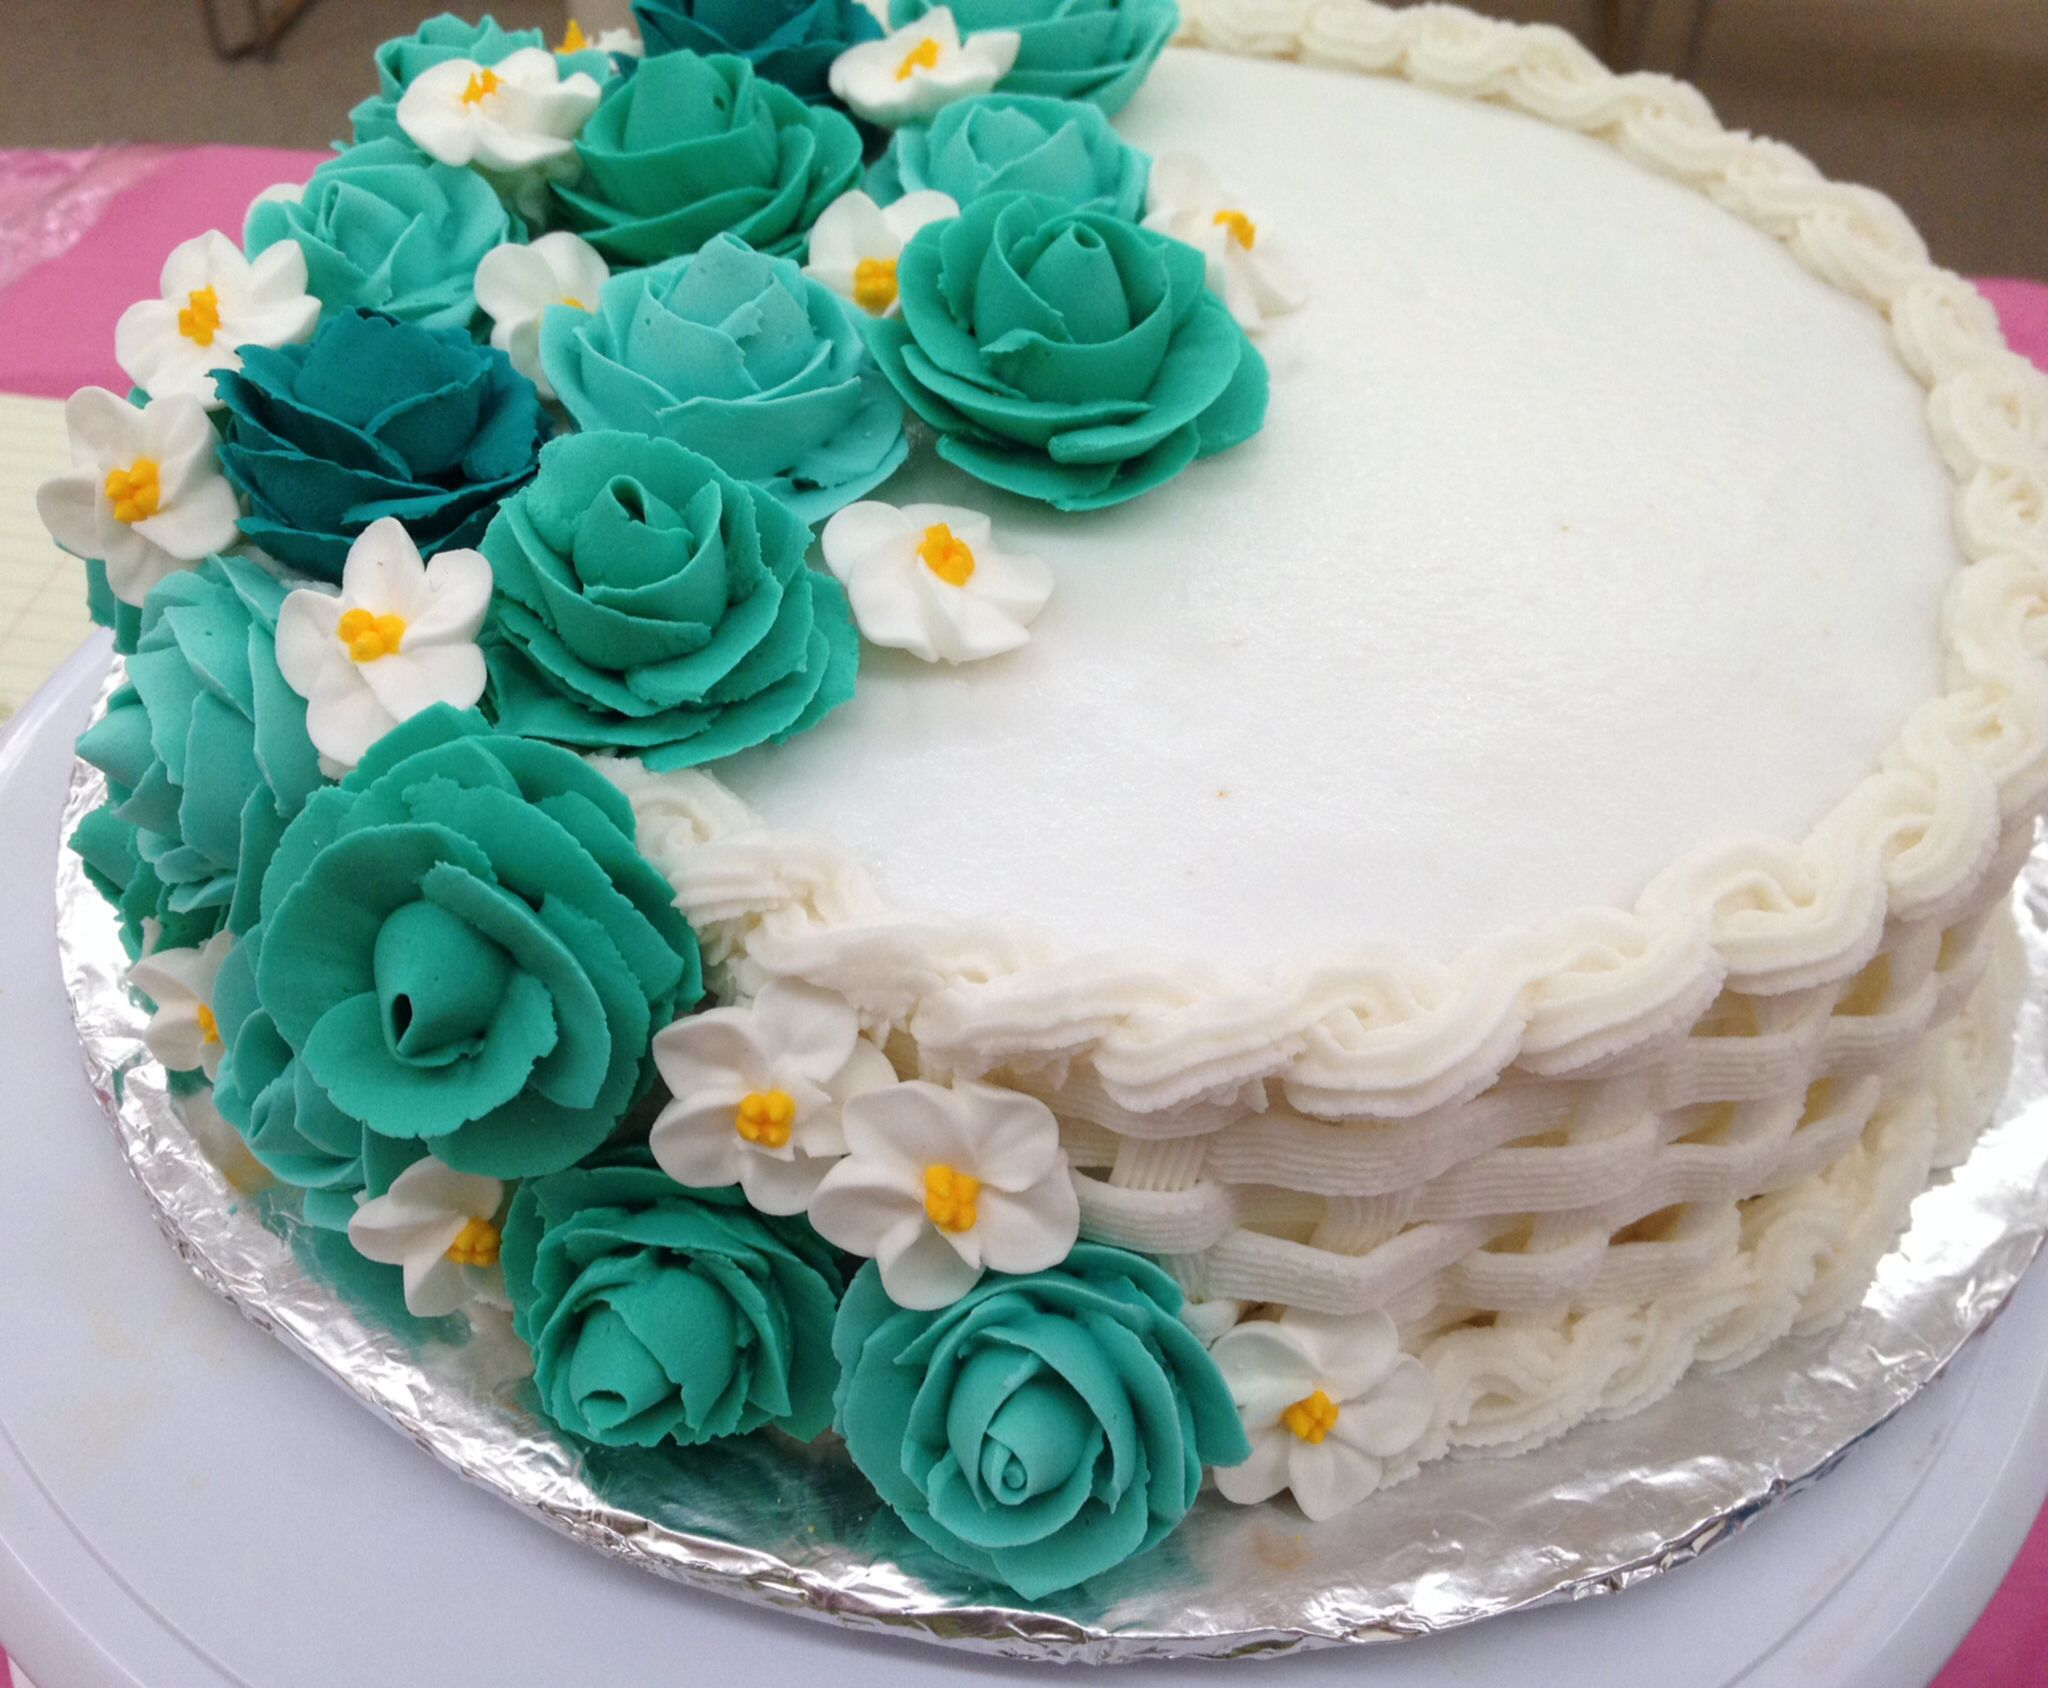 Wilton course 2 cake completed! Lemon cake with raspberry filling, royal icing flowers and ...